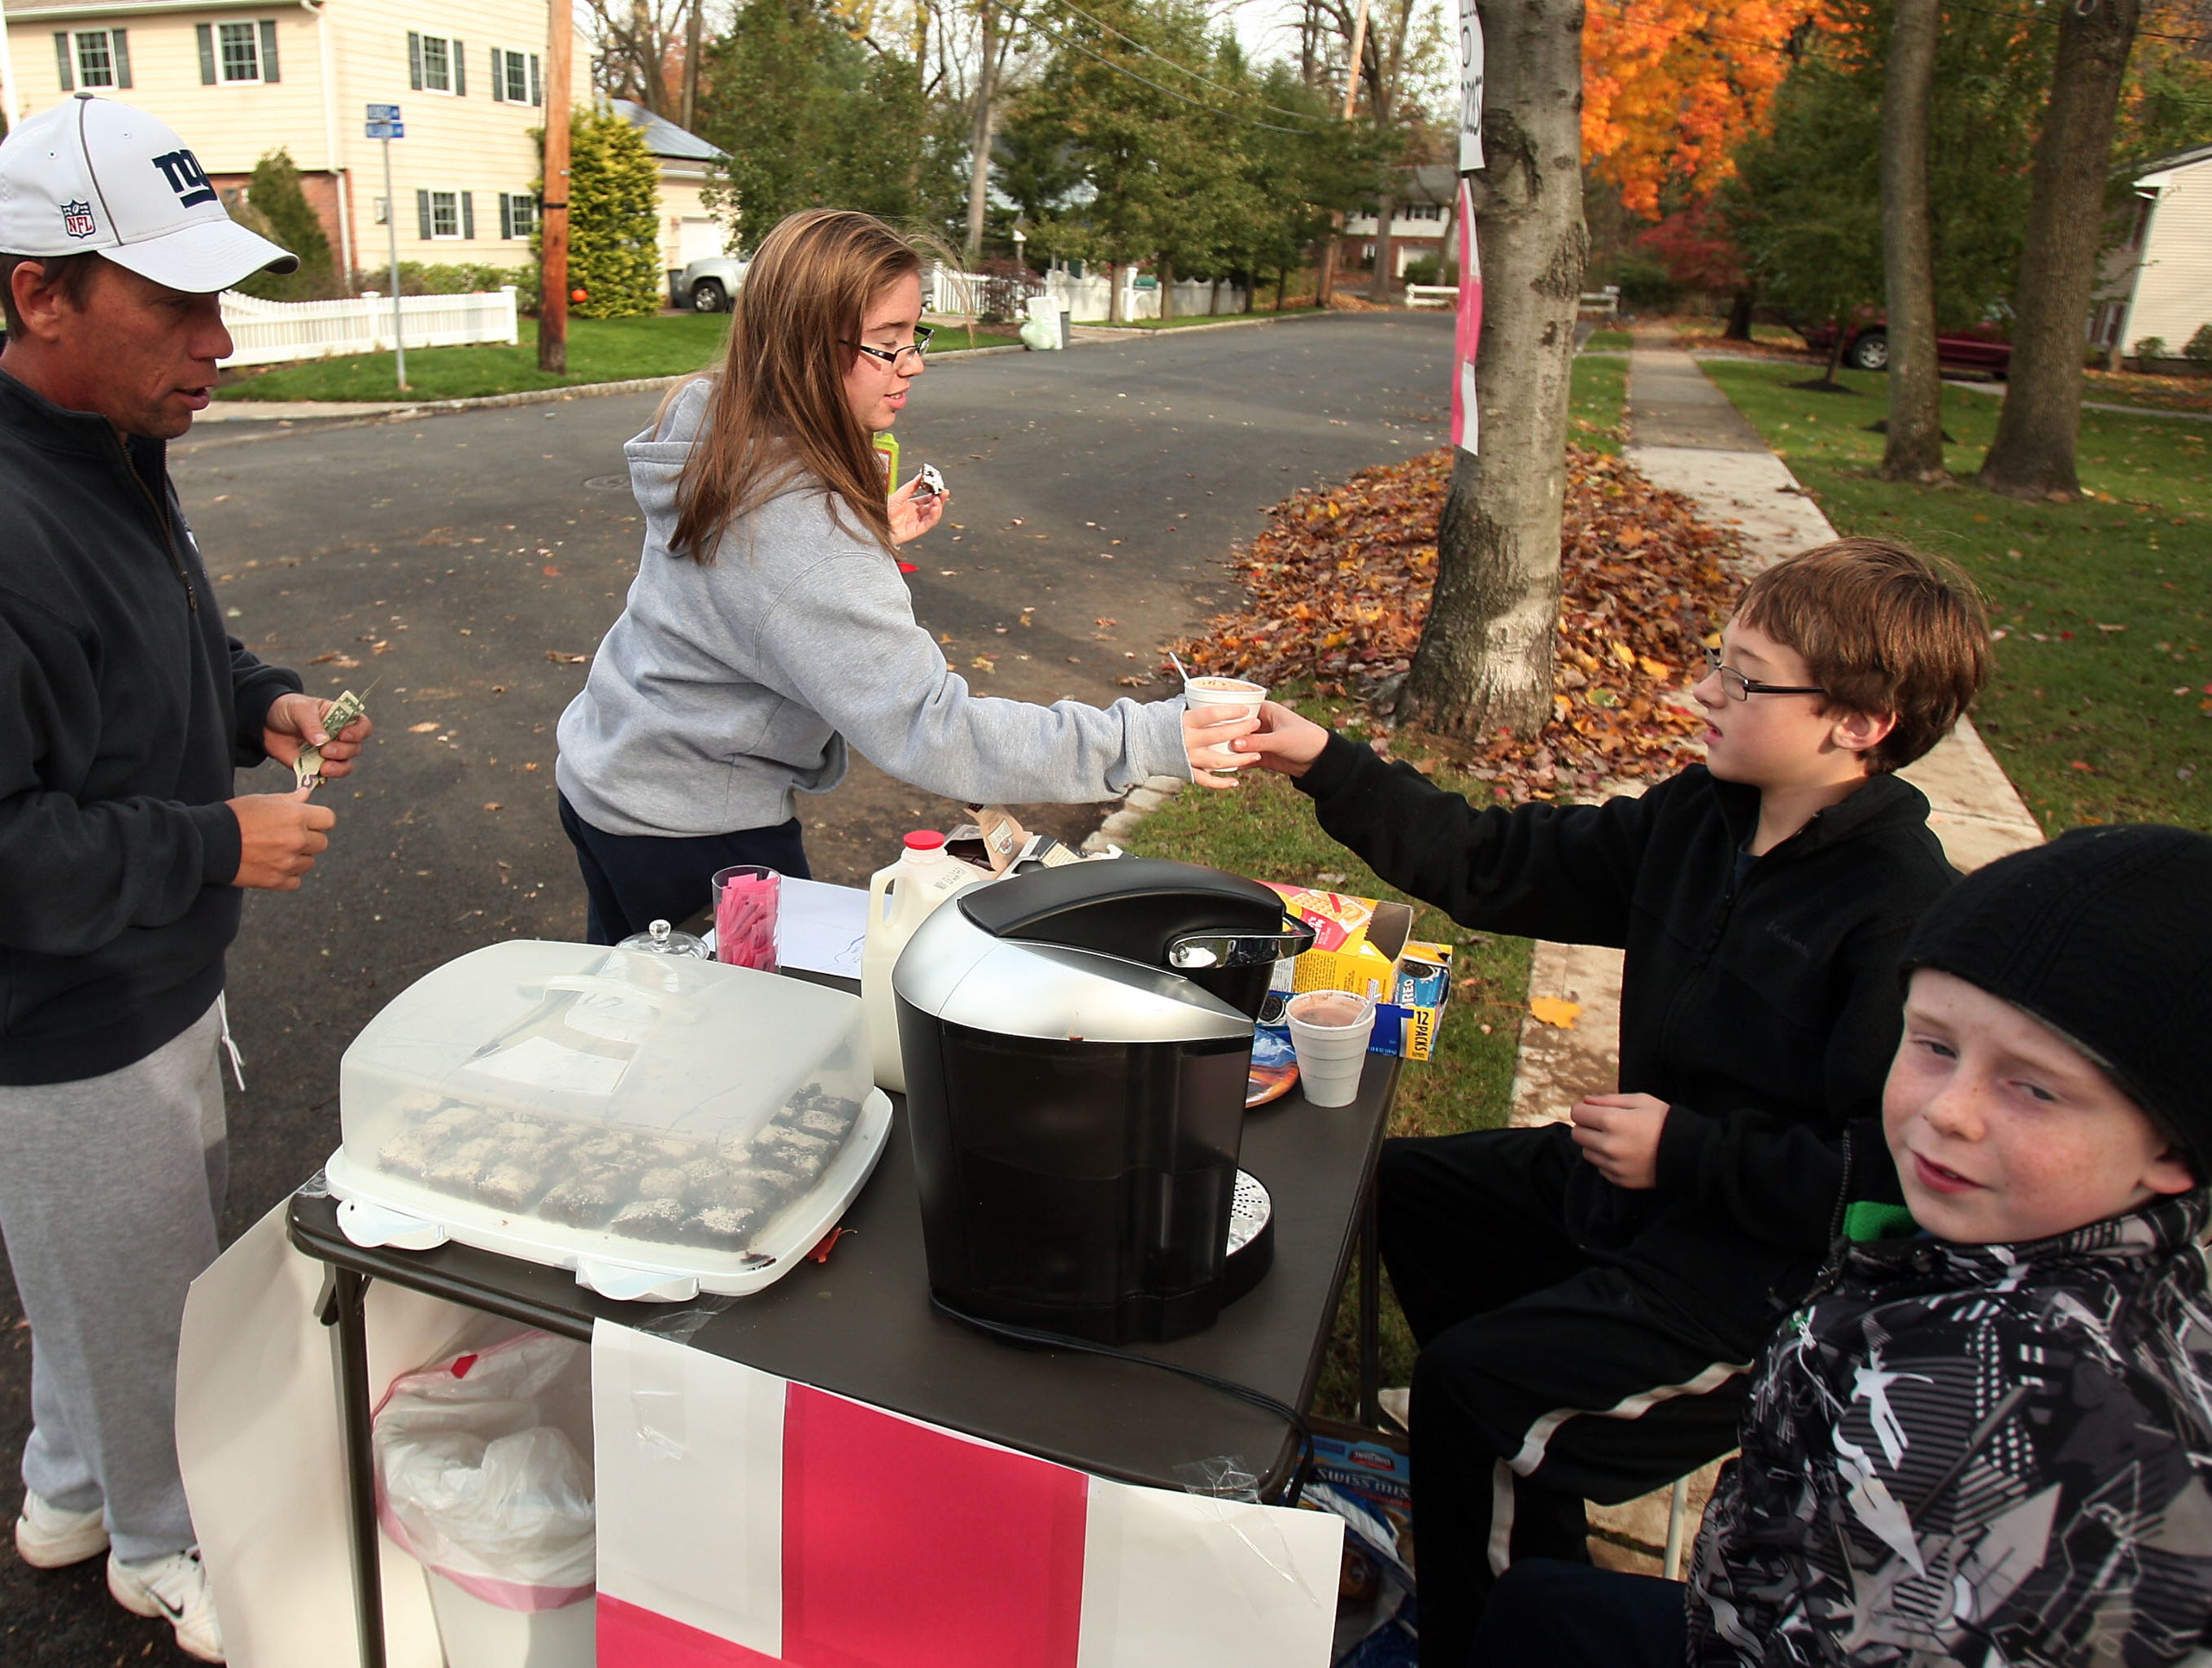 Chatham, NJ- November 1, 2012--Ron and Kelly Krincek of Chatham, NJ buy some hot chocolate from Nick Meyer (11) and Jack Konrad (8) who are taking the money for donations to the Red Cross on Hedges Avenue as locals continue the recovery process after Hurricane Sandy devastated the eastern seaboard.Bob Karp/Staff Photographer/DAILY RECORD